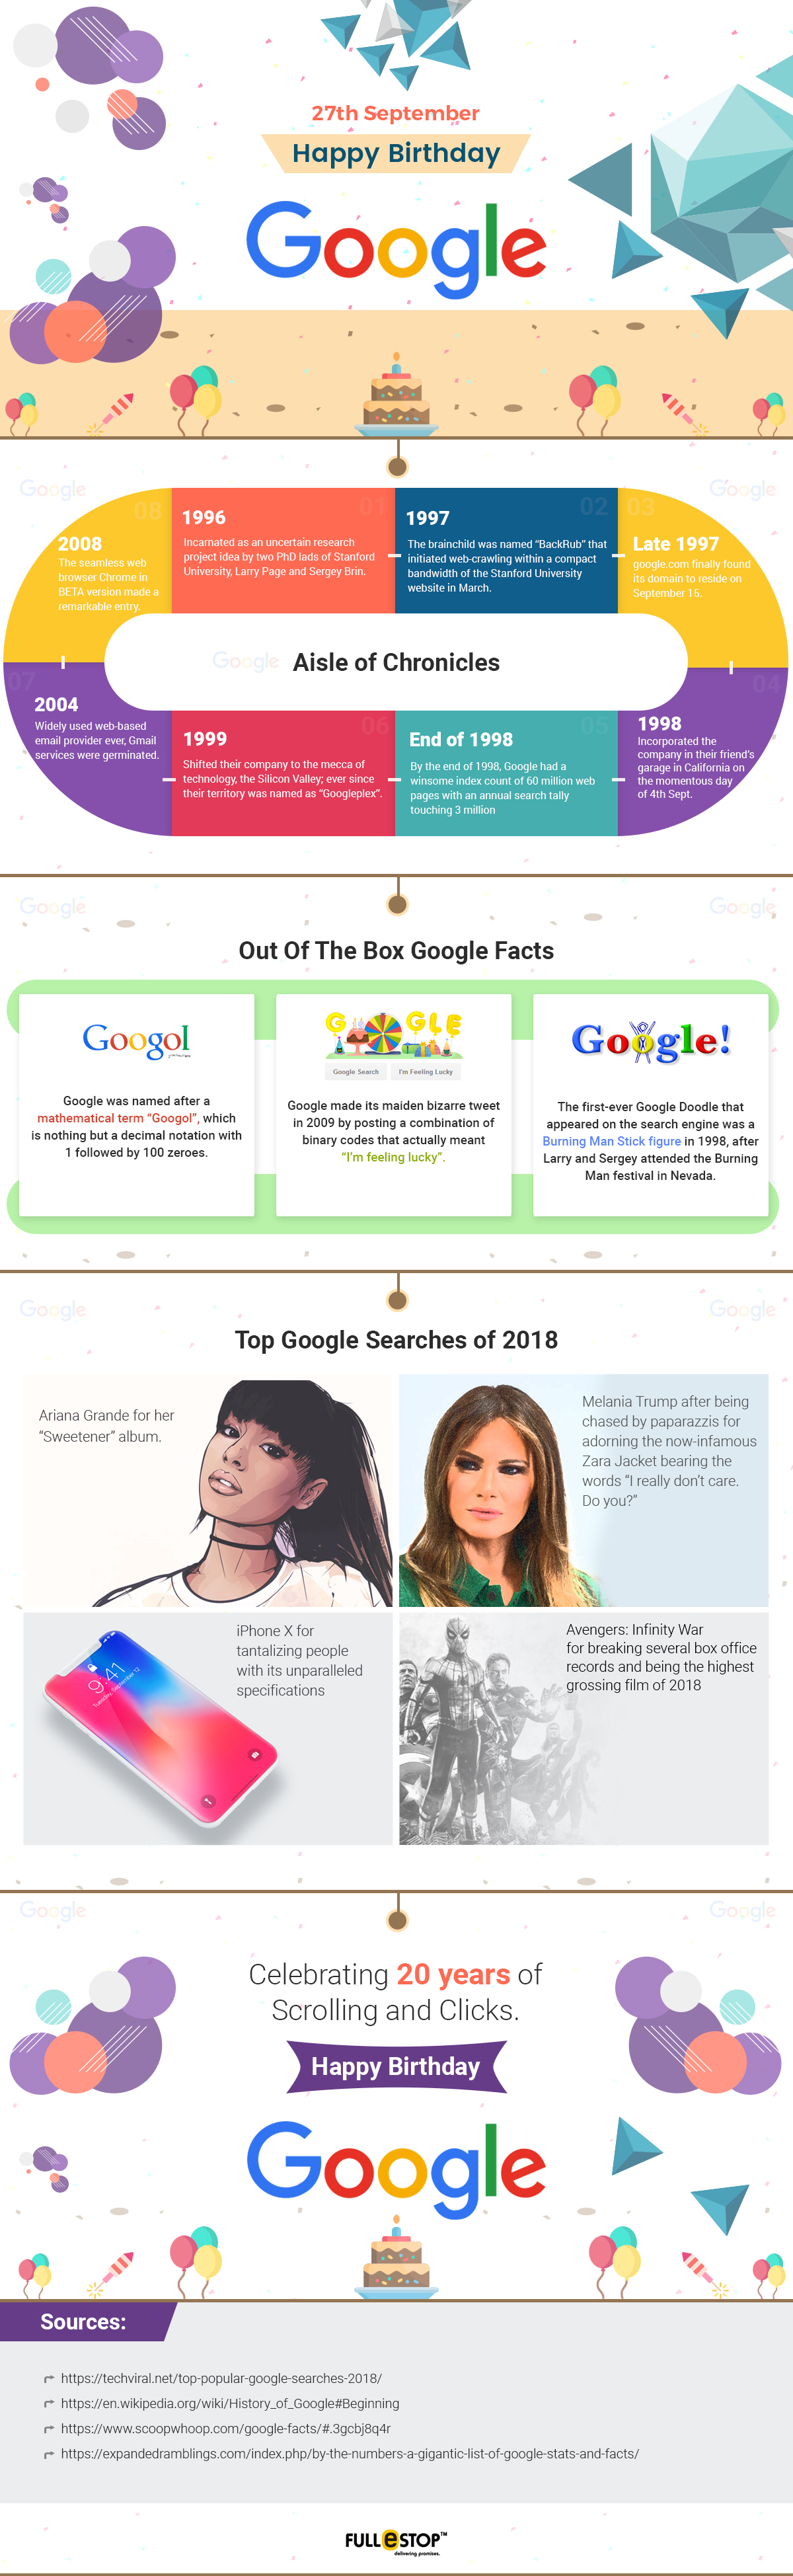 Happy Birthday Google [Infographic]